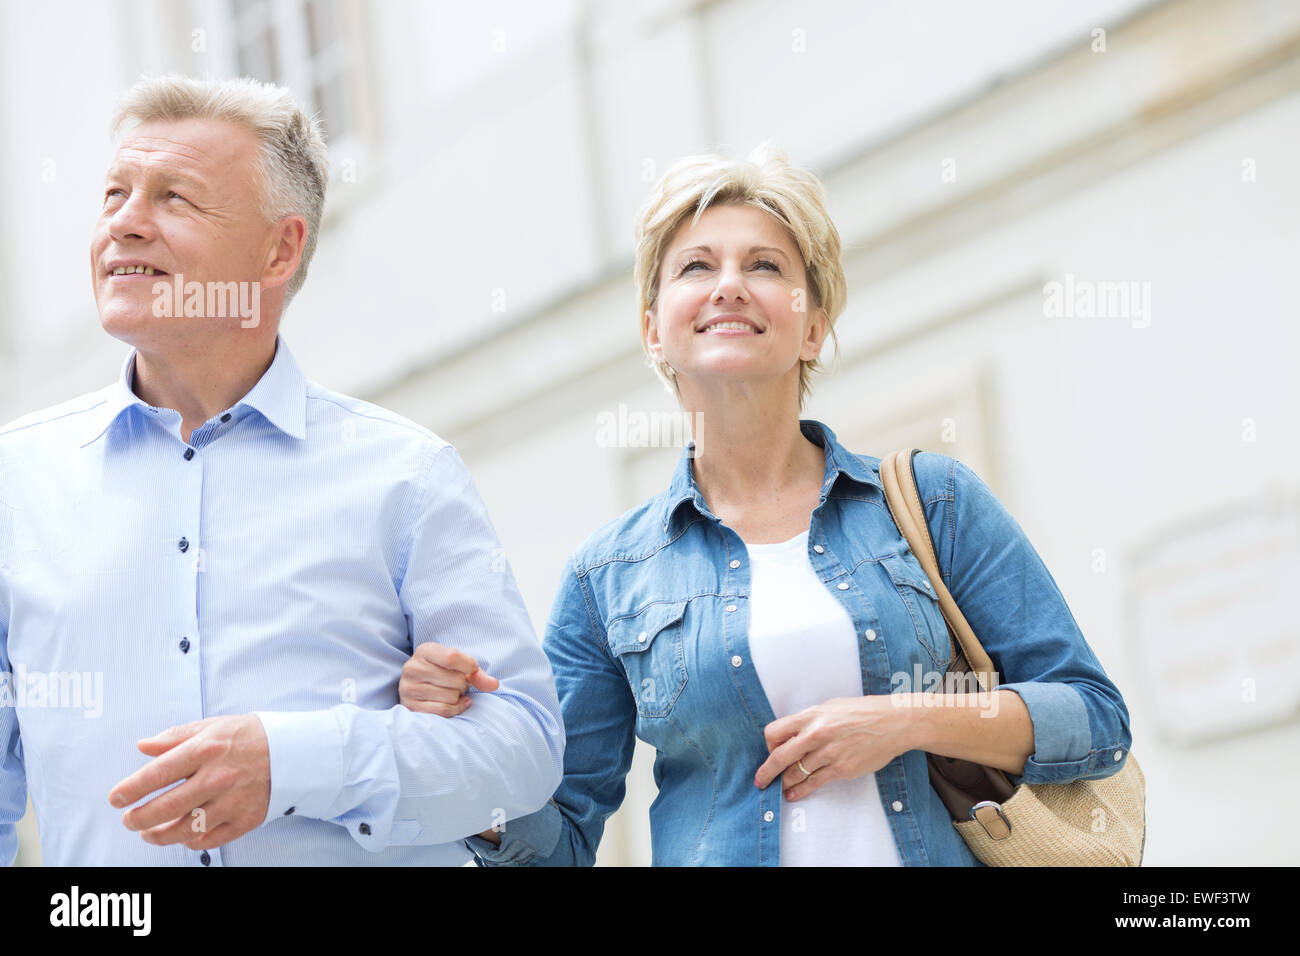 Smiling middle-aged couple standing with arm in arm outdoors - Stock Image